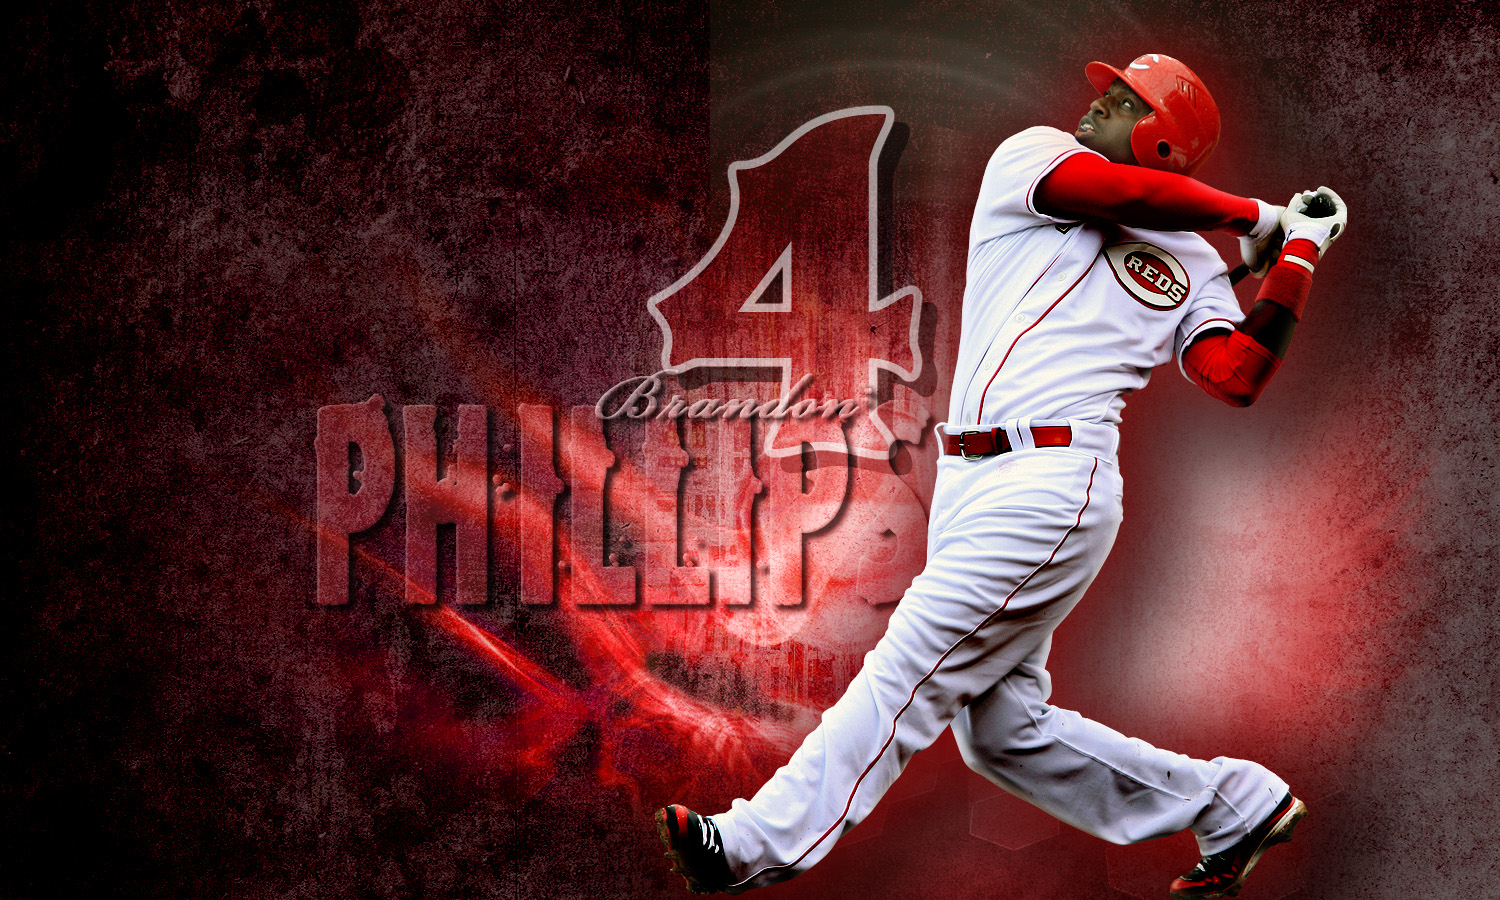 Brandon Phillips by storm19 1500 x 900 1500x900